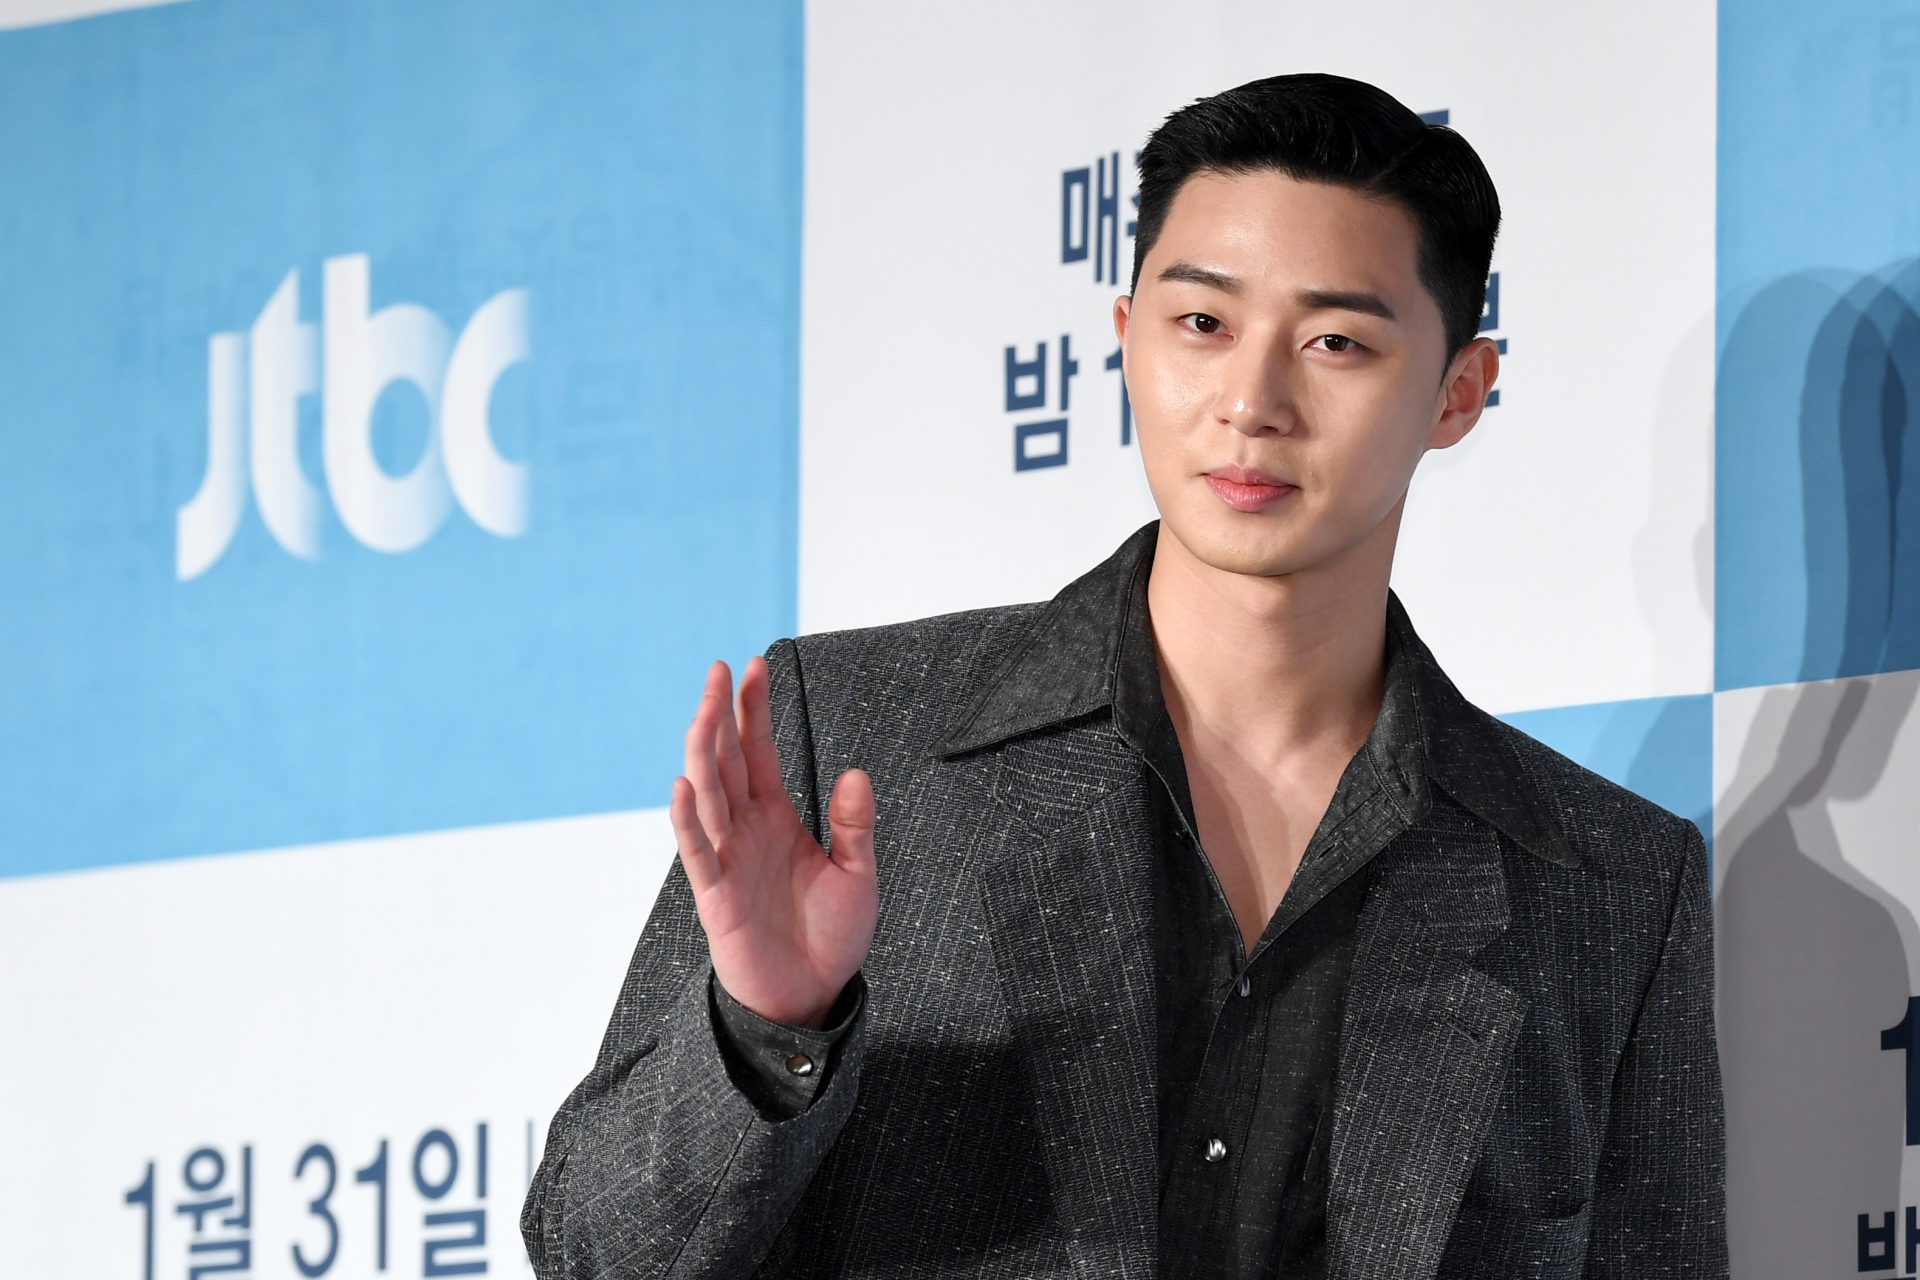 Park Seo-joon makes his Hollywood debut in 'The Marvels'! What role will he play?